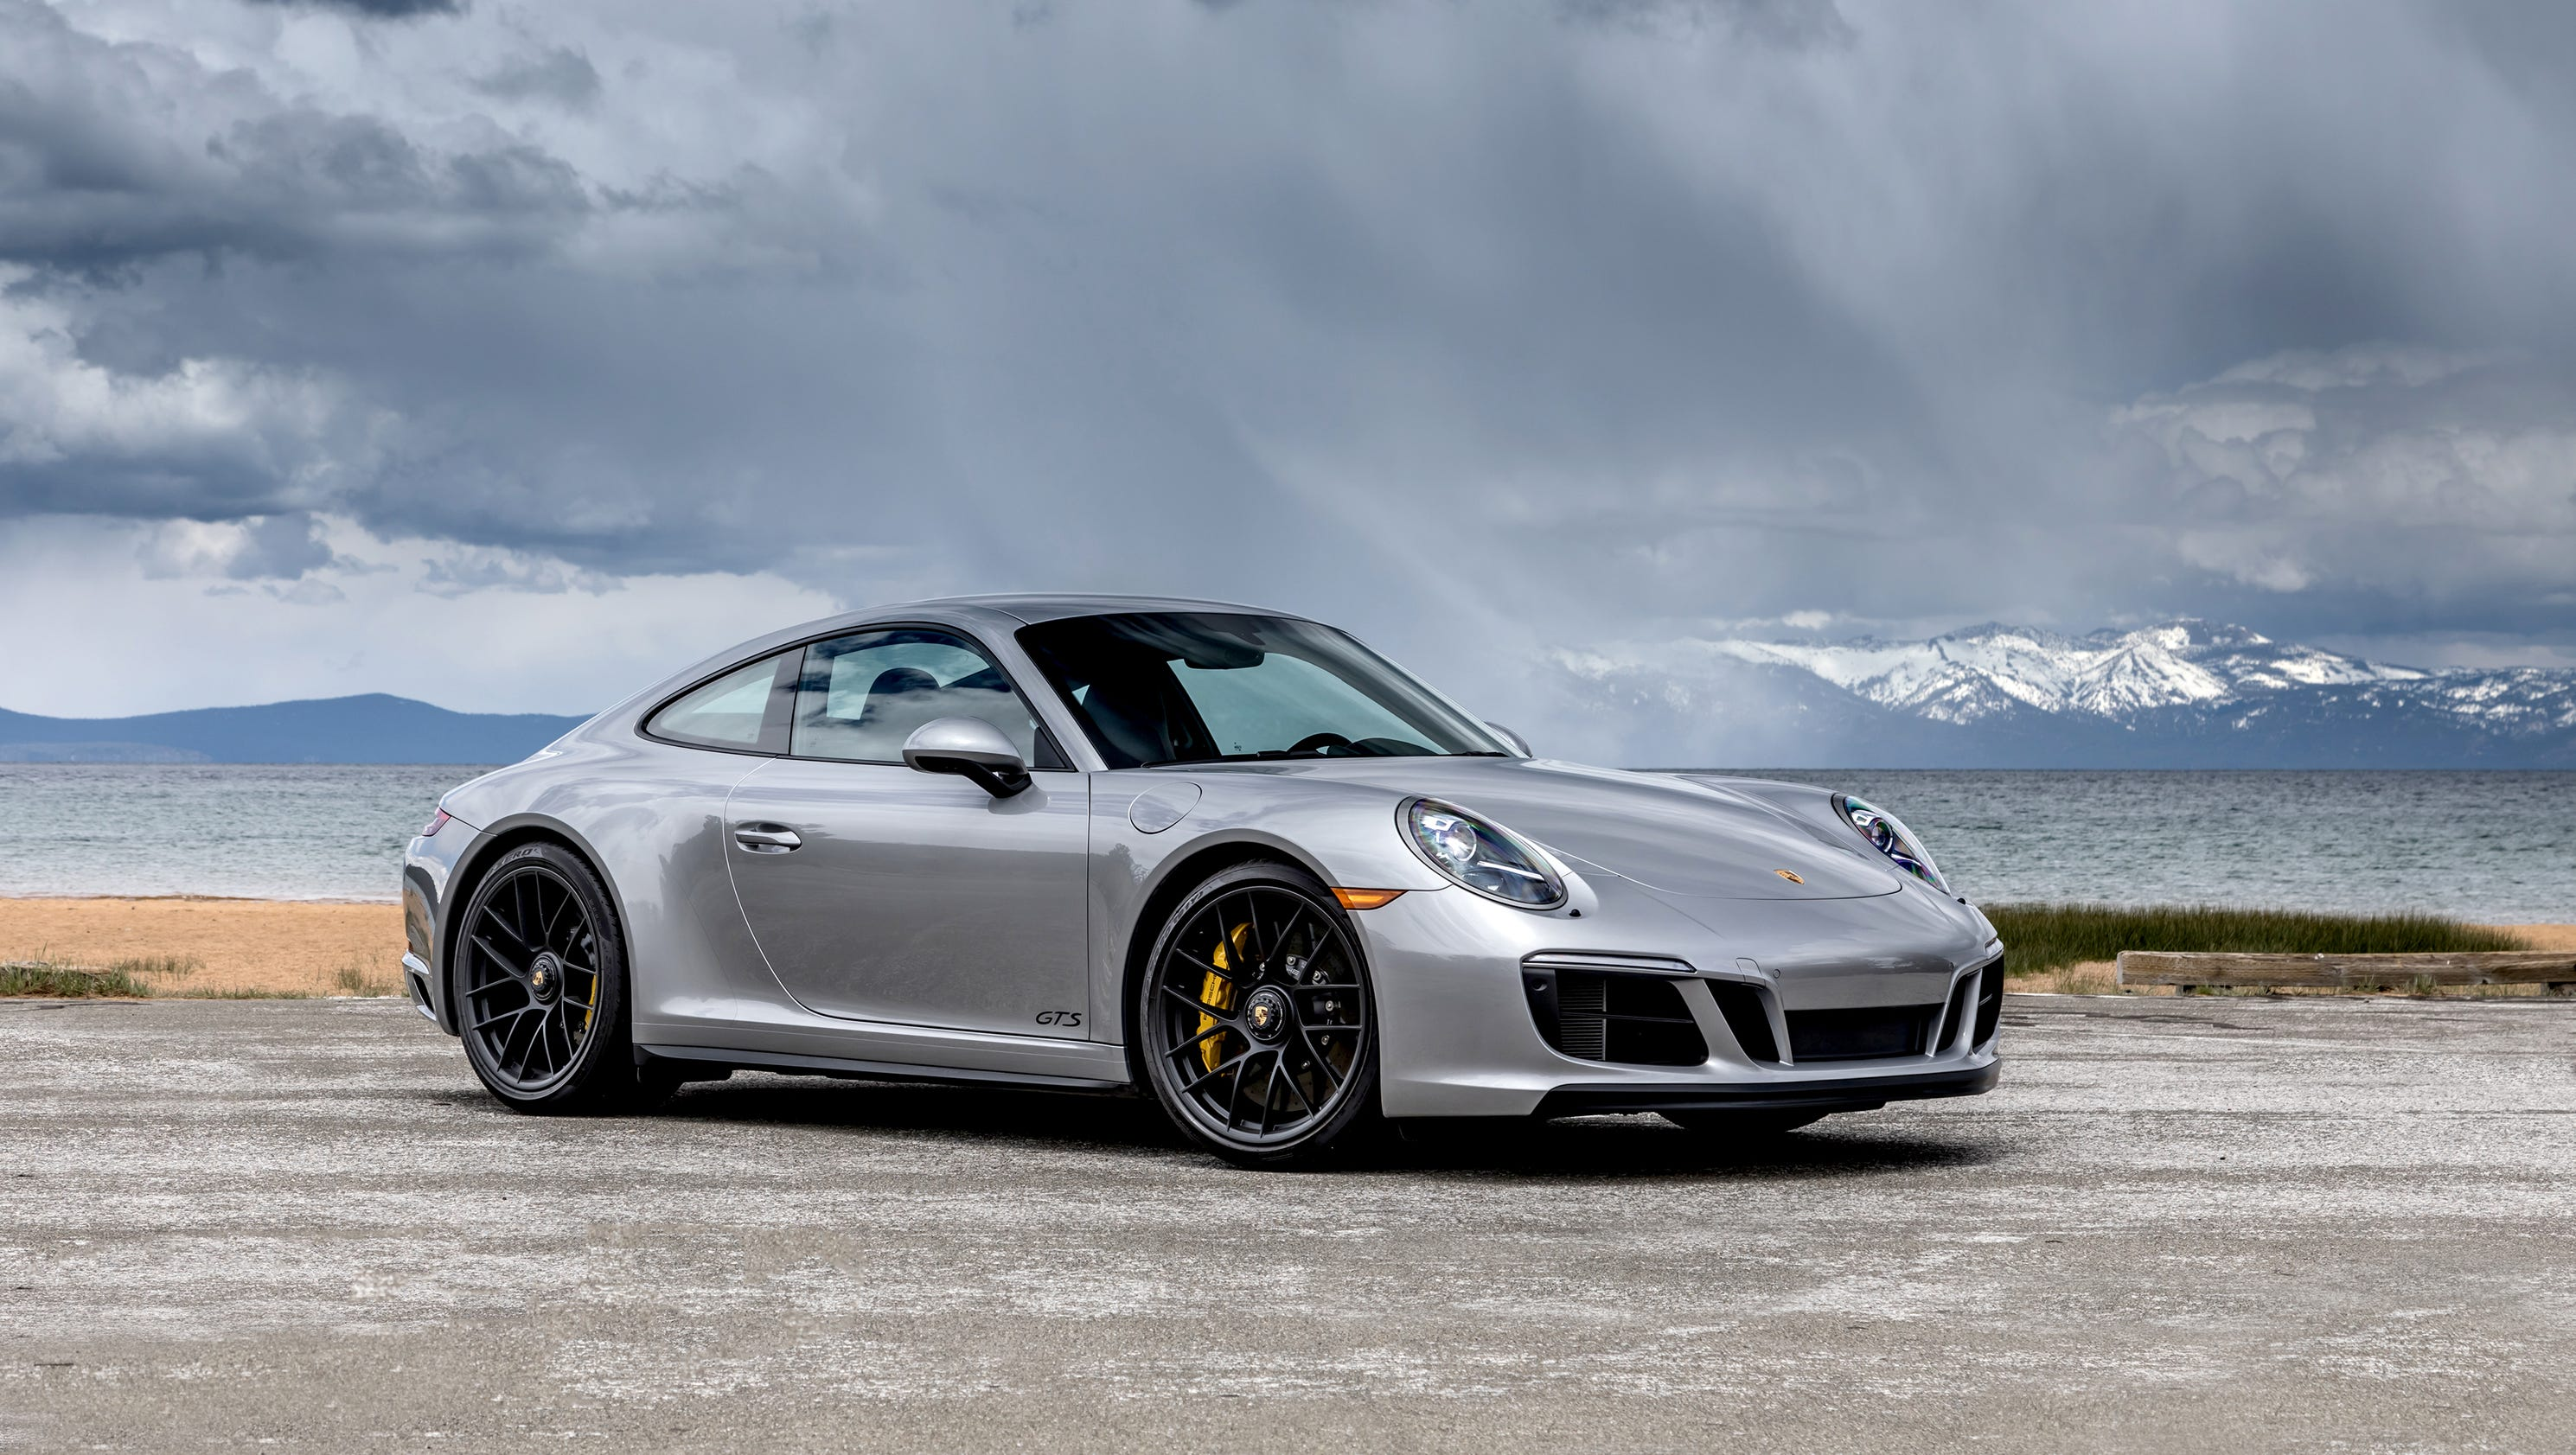 Carrera Gts May Be Porsche S Best 911 And The Bargain Of